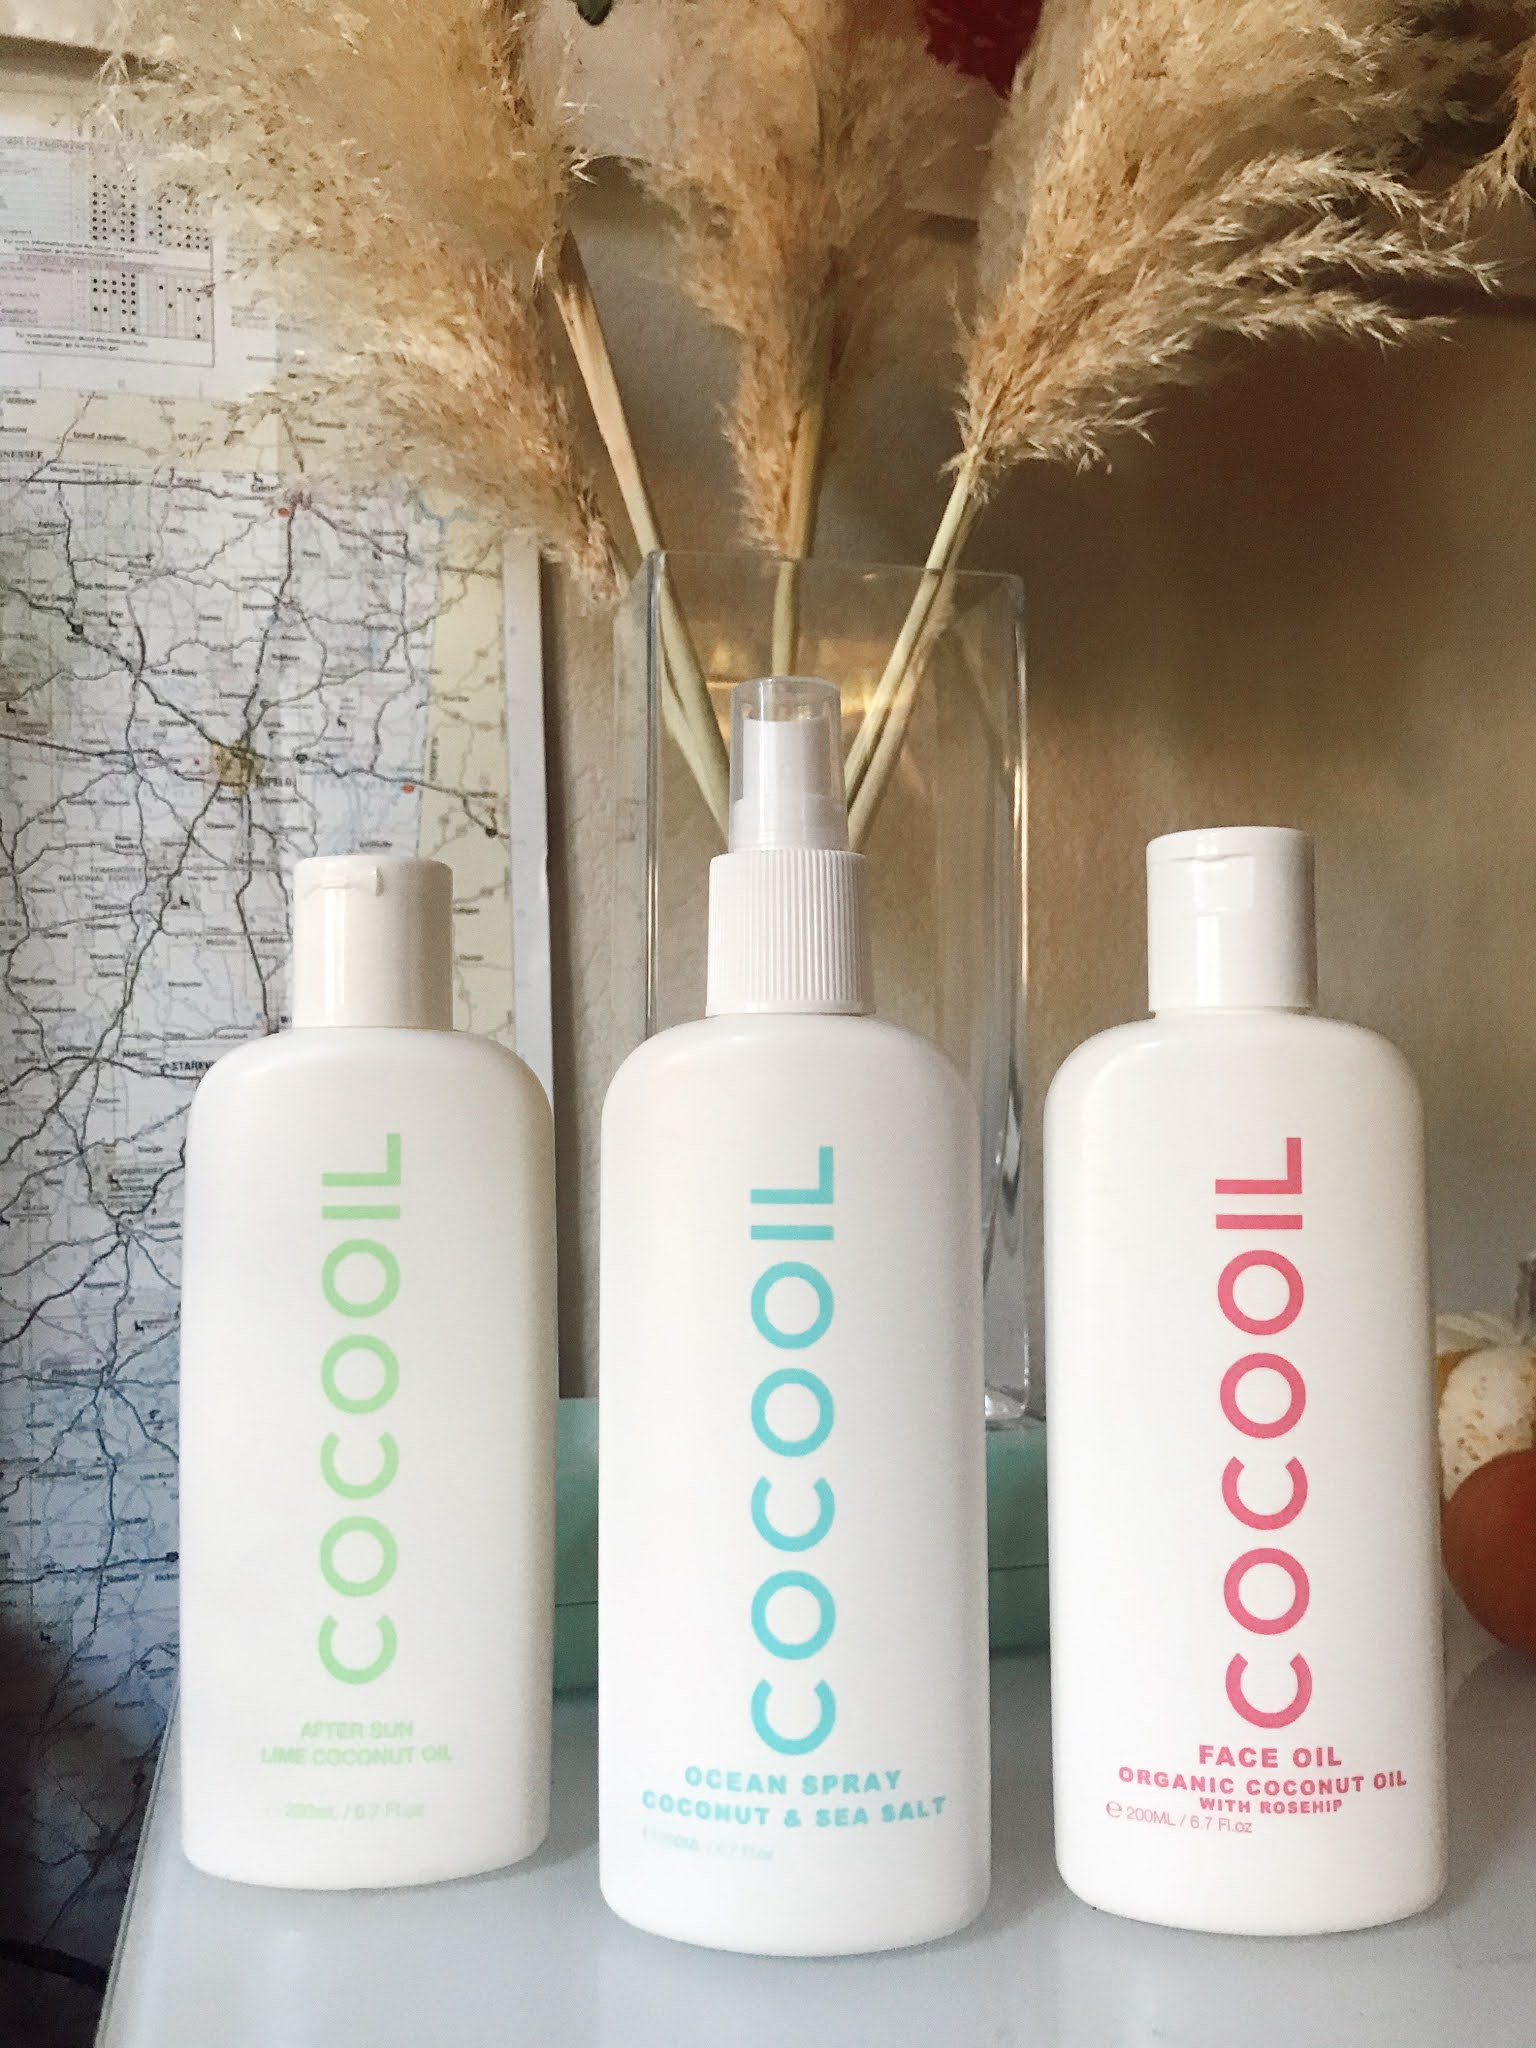 After Sun oil with lime Small Business Shopping Gift Guide CocoOil